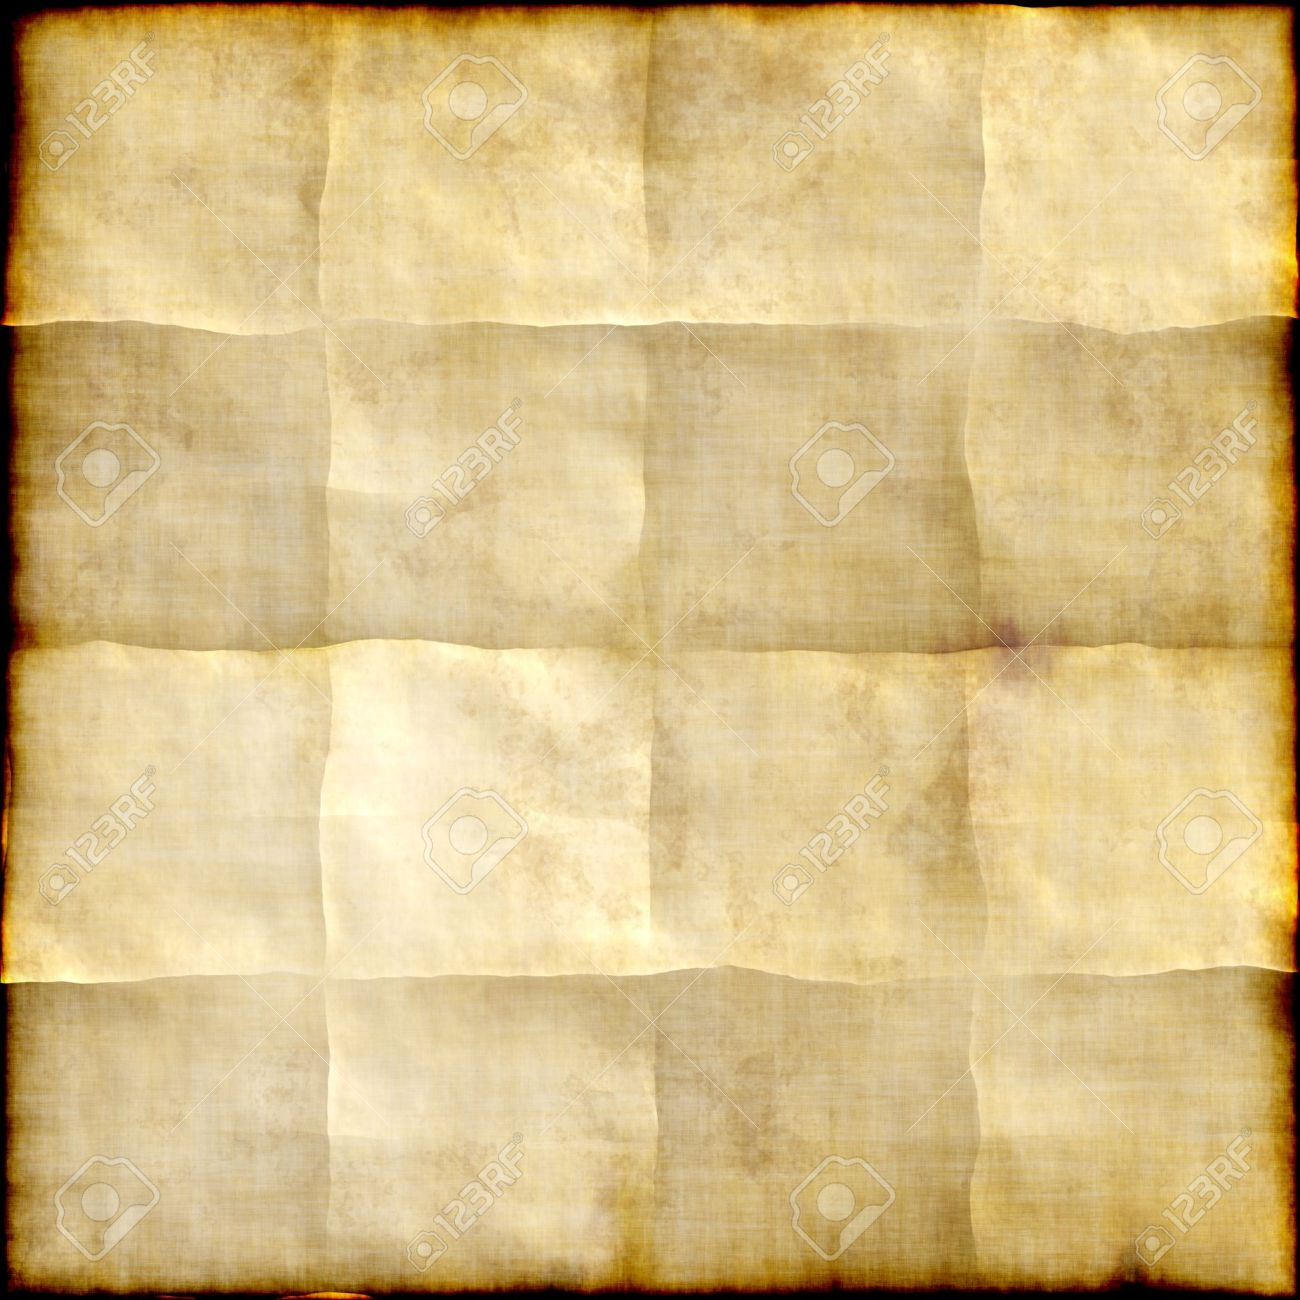 Old Paper Background With Traces Of Folds Stock Photo Picture And Royalty Free Image Image 13663560